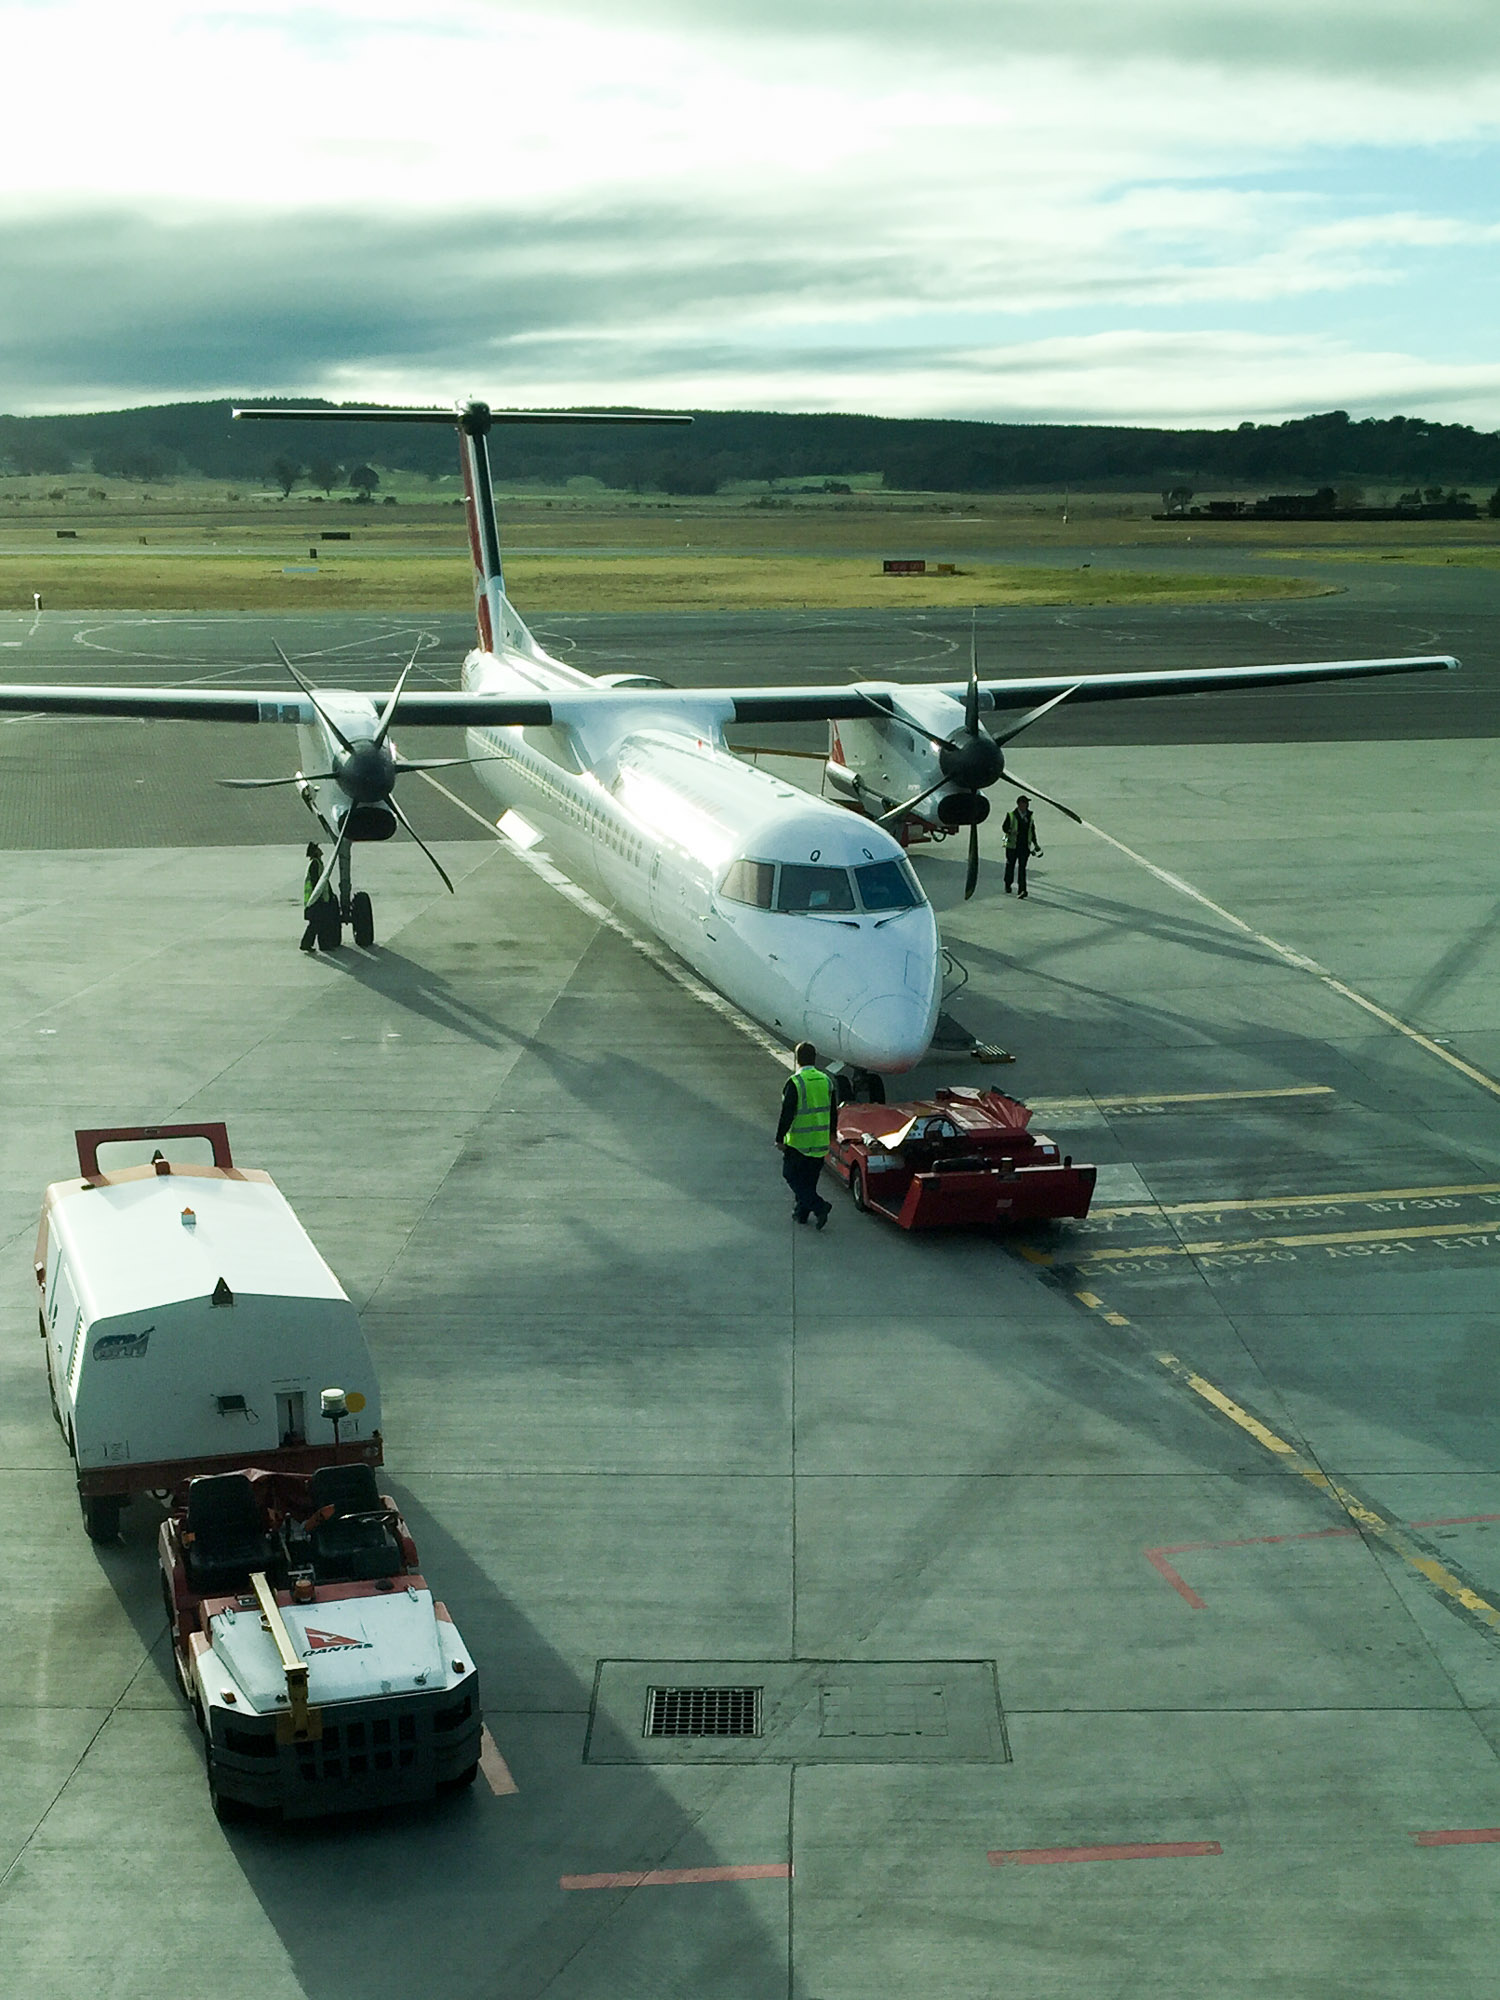 QF1464 on tarmac Canberra Airport